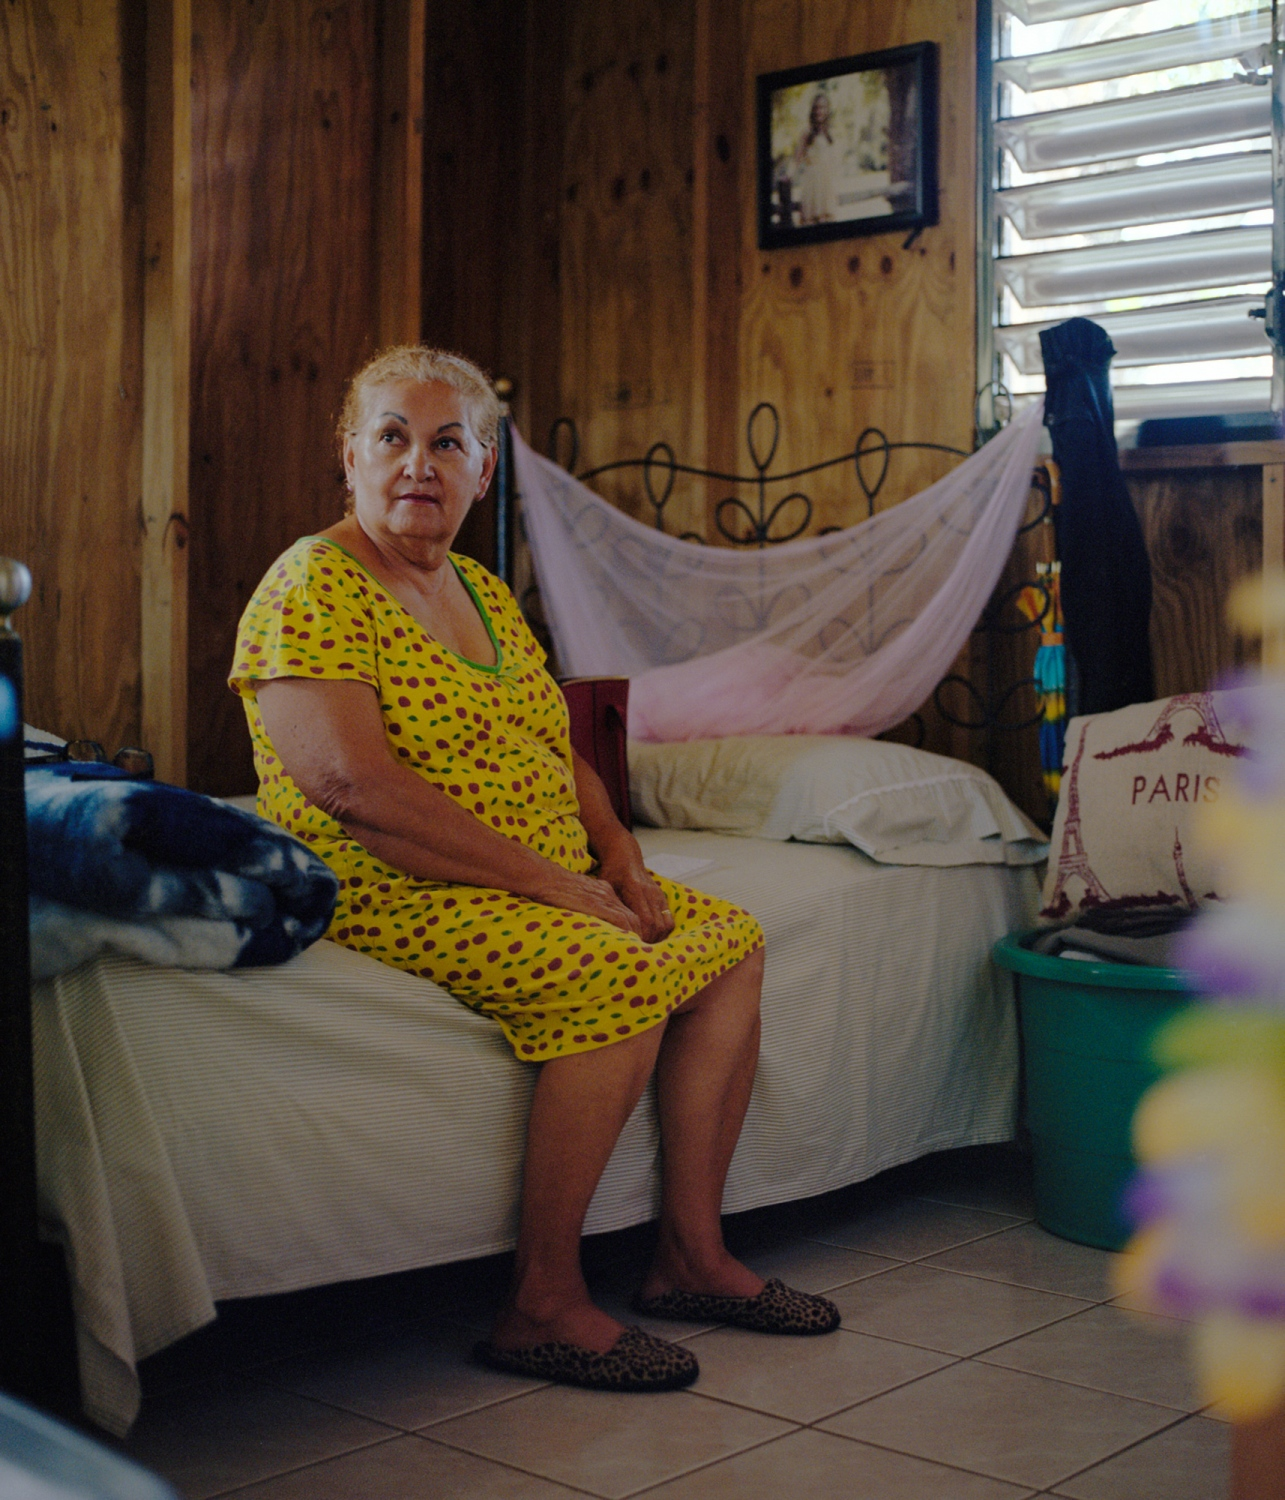 My grandmother, Amparo, sits and reflects in her bedroom after finishing a call with my aunt Giacinia in Florida. During my time visiting after the storm, she would joke how I was leaving New York in 2017 and coming to Puerto Rico in 1950. She told this joke to lighten the spirits due to the lack of power and water in my relatives' homes. Ponce, Puerto Rico, February 2018.